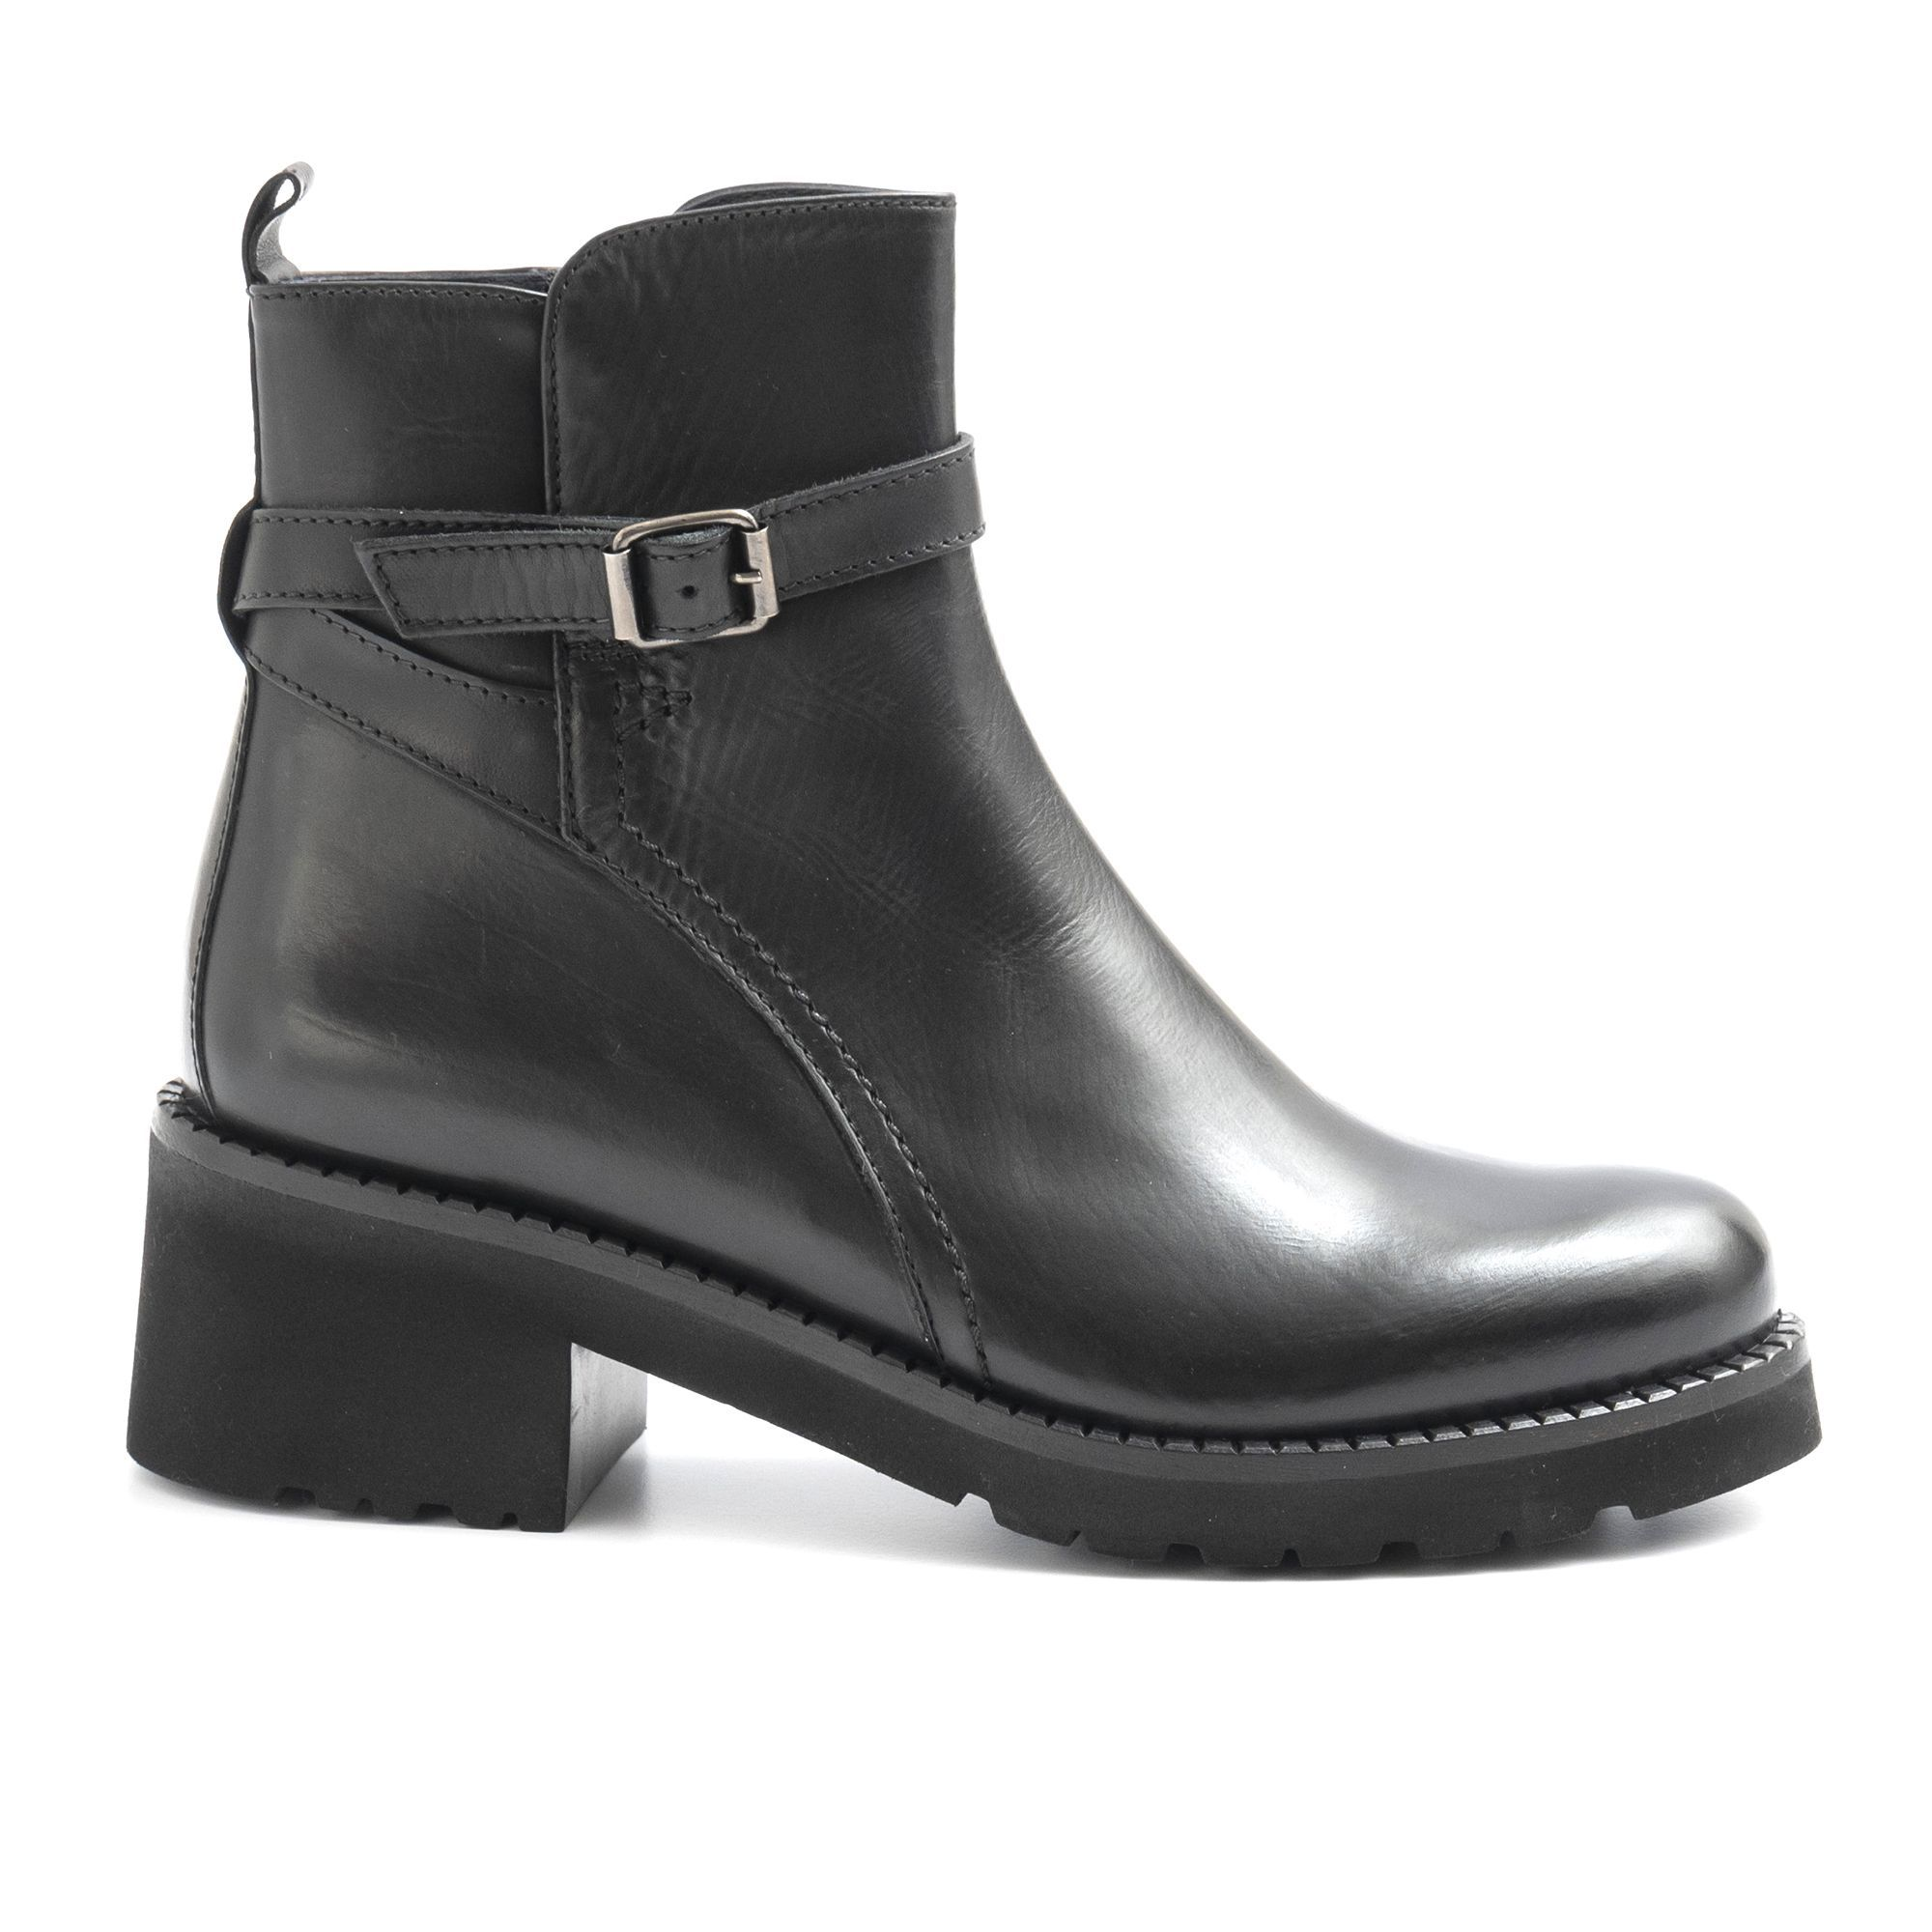 Women's Felicity Leather Buckle Ankle Boots, Black